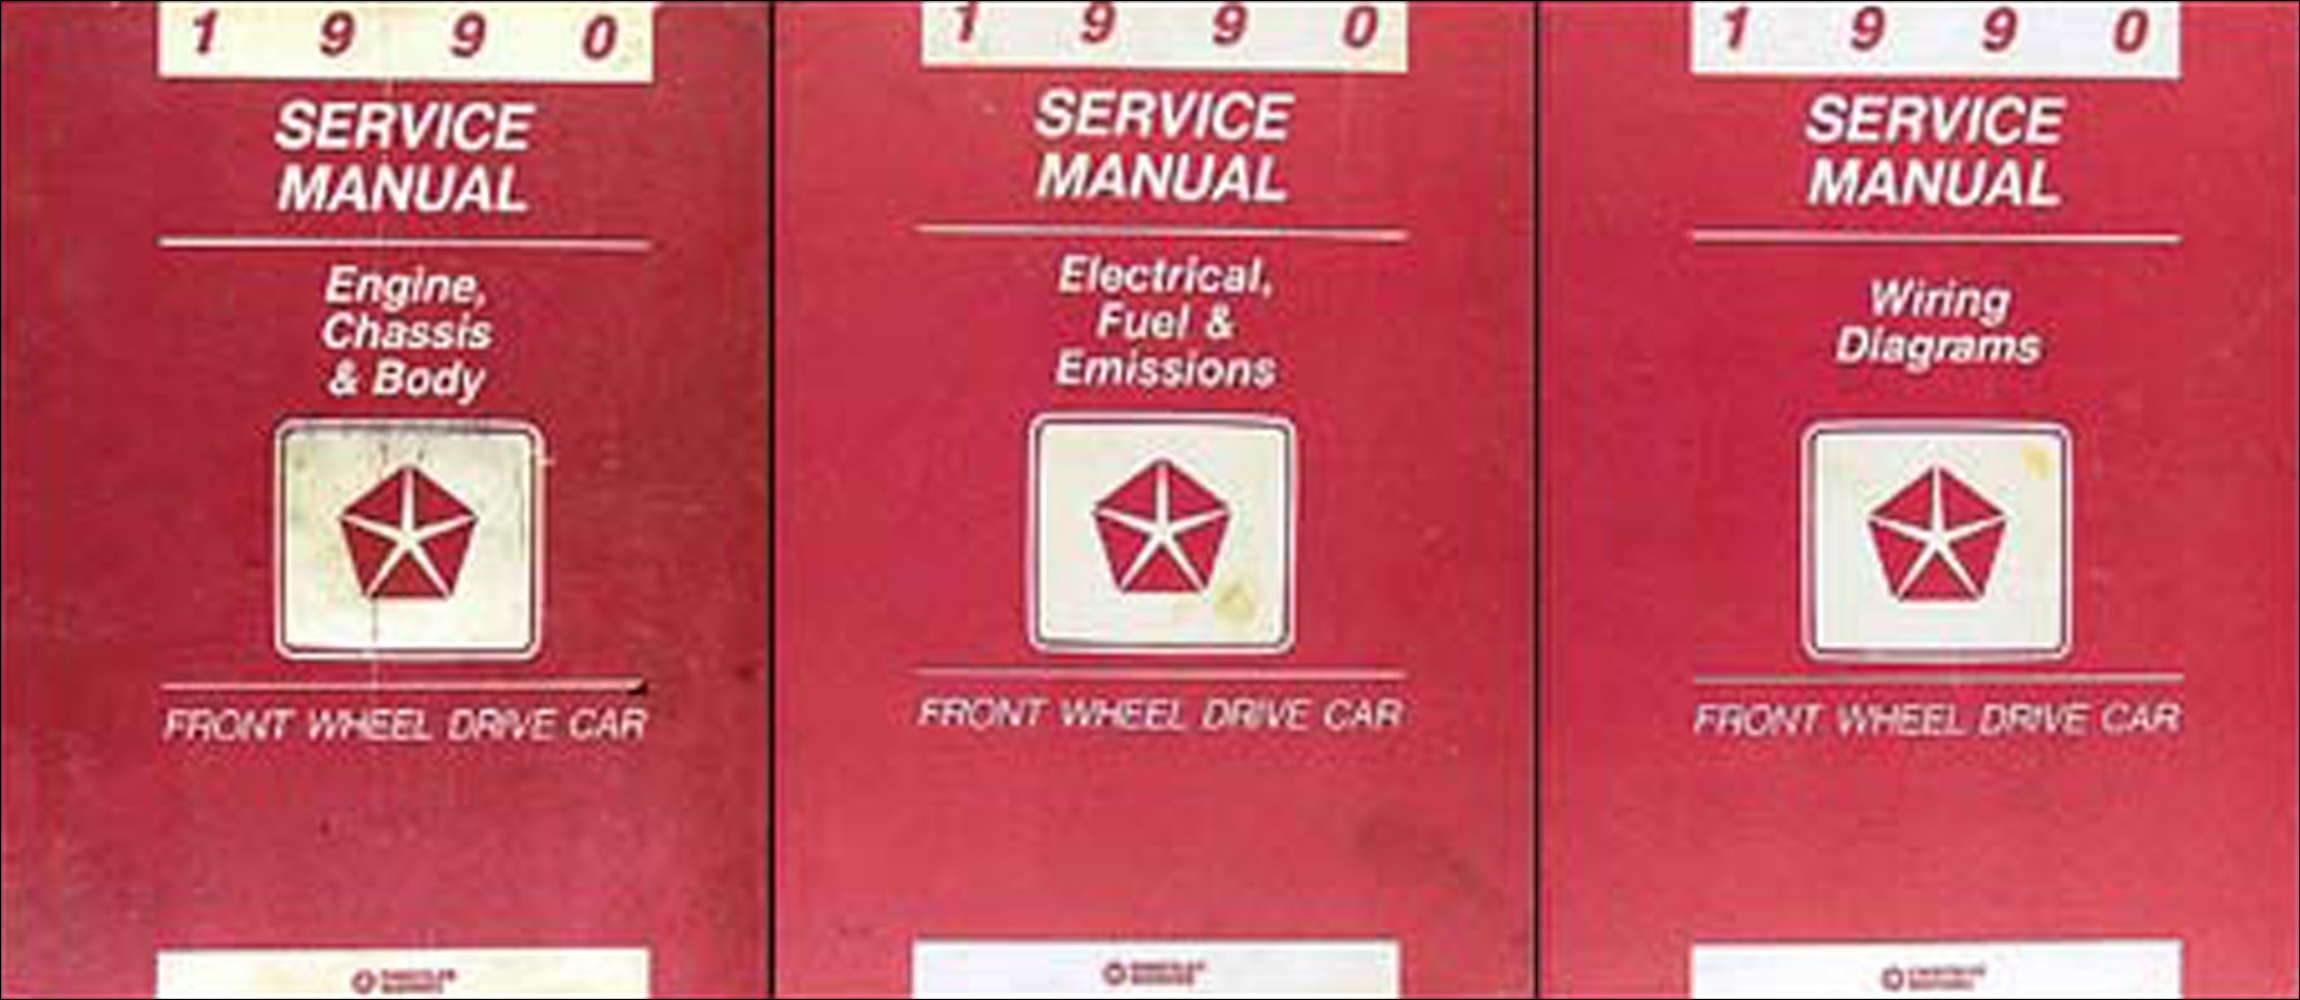 1990 MoPar FWD Car Repair Manual 3 Vol Set